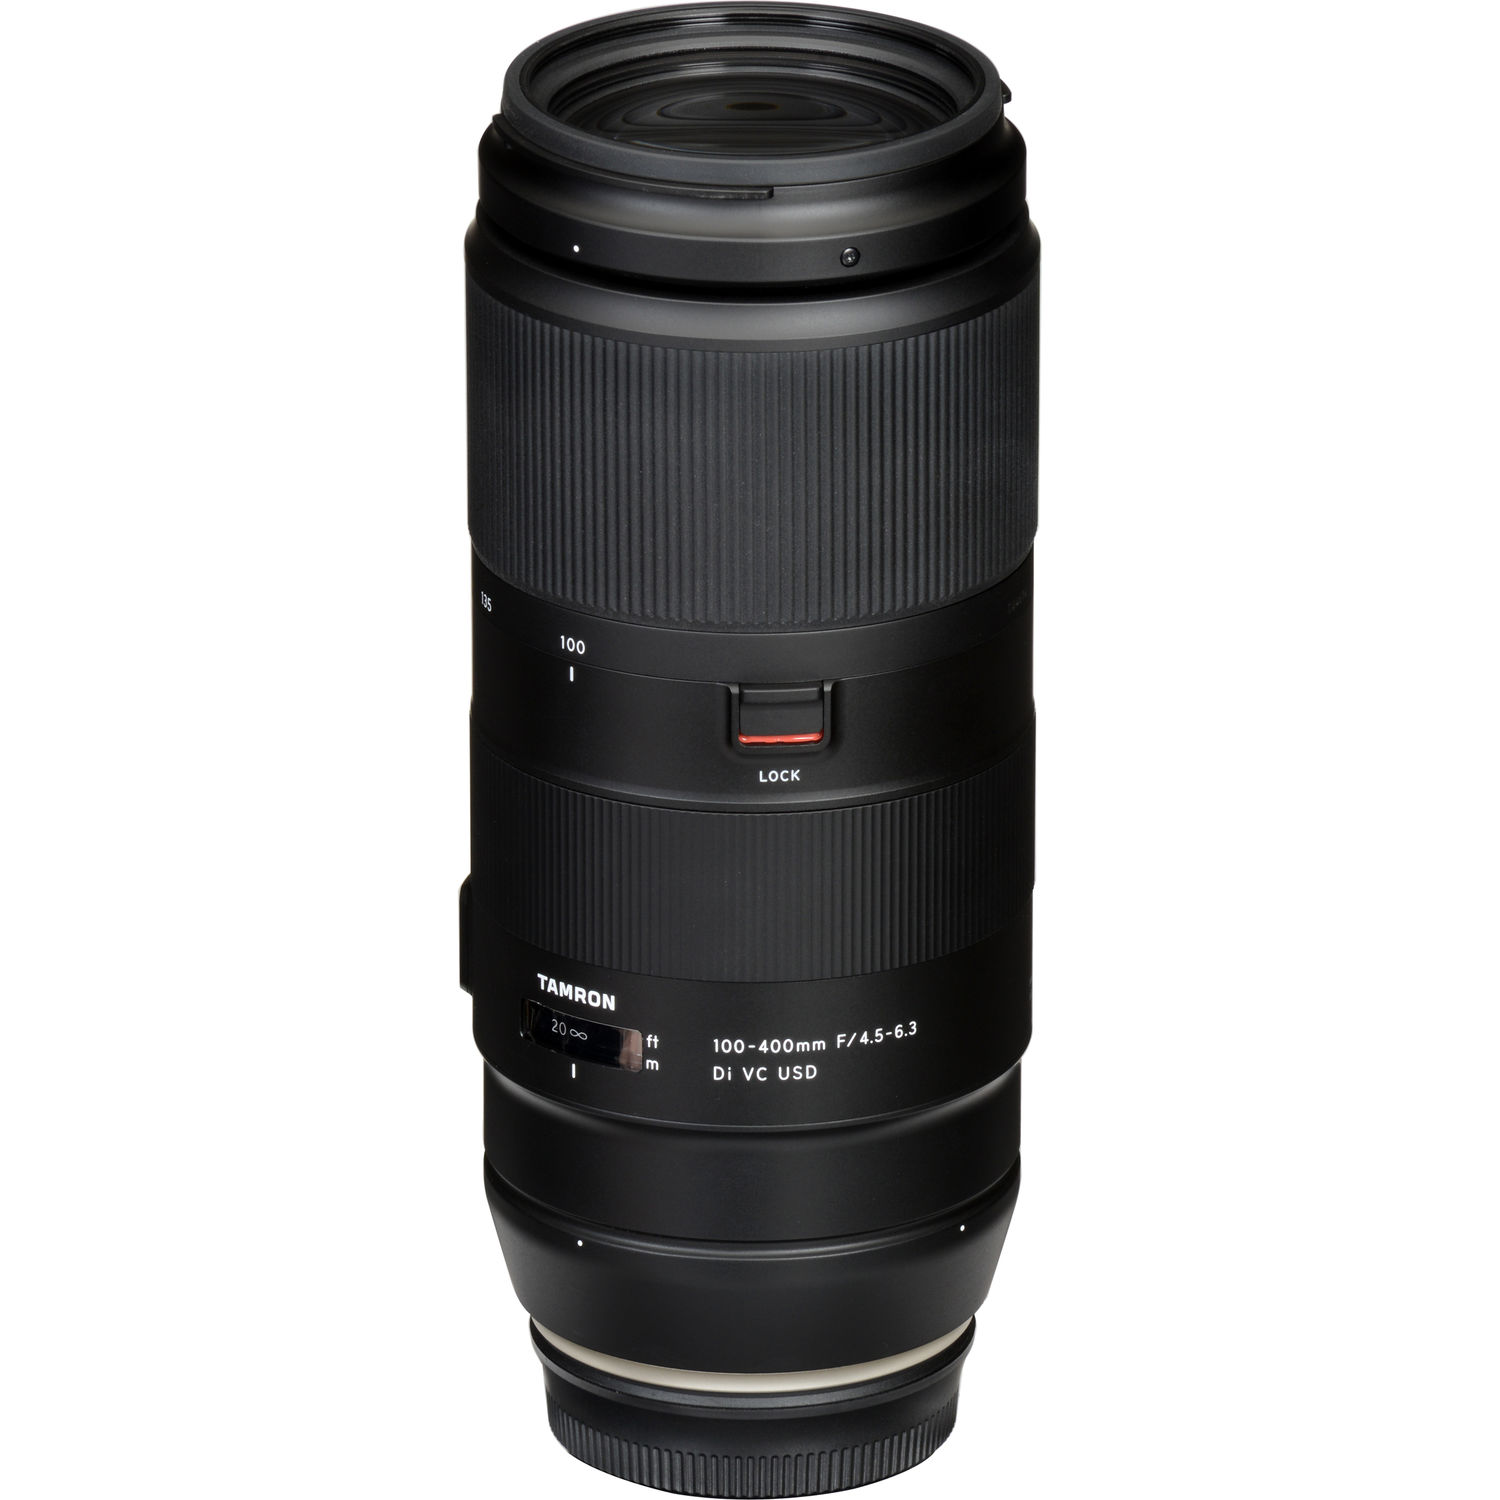 لنز تامرون Tamron 100-400mm f/4.5-6.3 Di VC USD for Canon EF